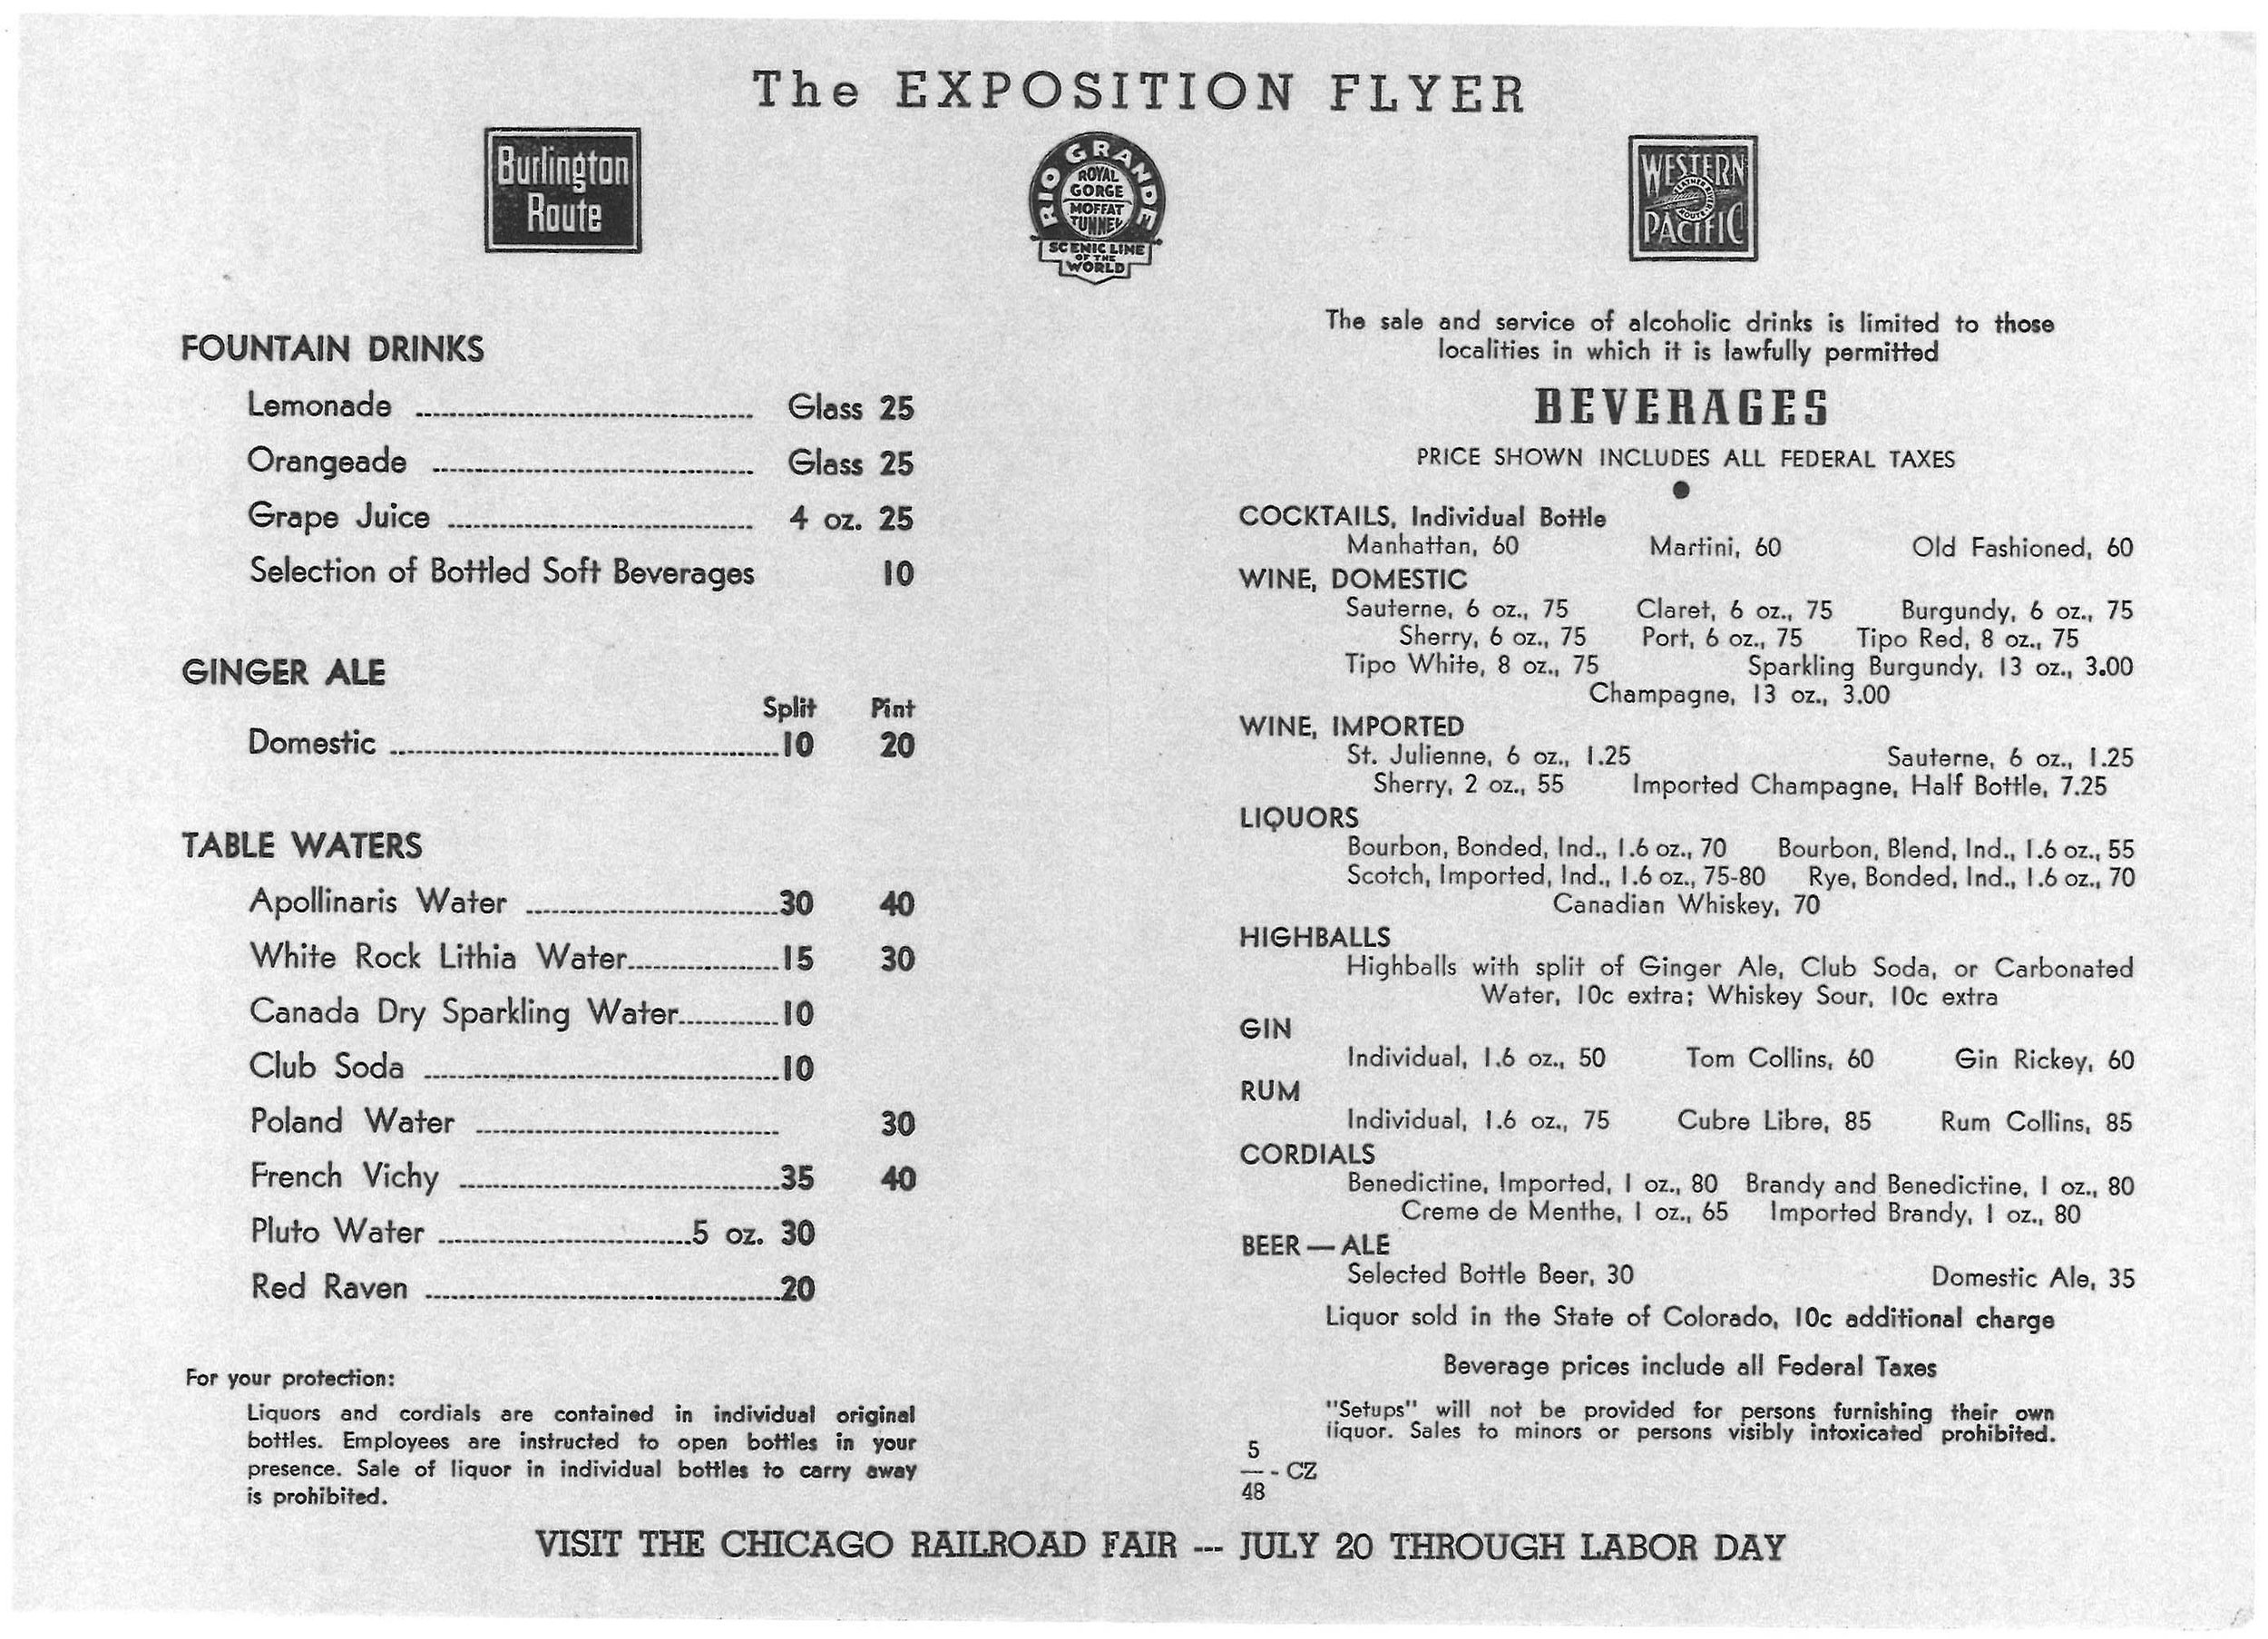 Burlington+The+Exposition+Fyler+Beverage+Menu+5-48 2.jpg